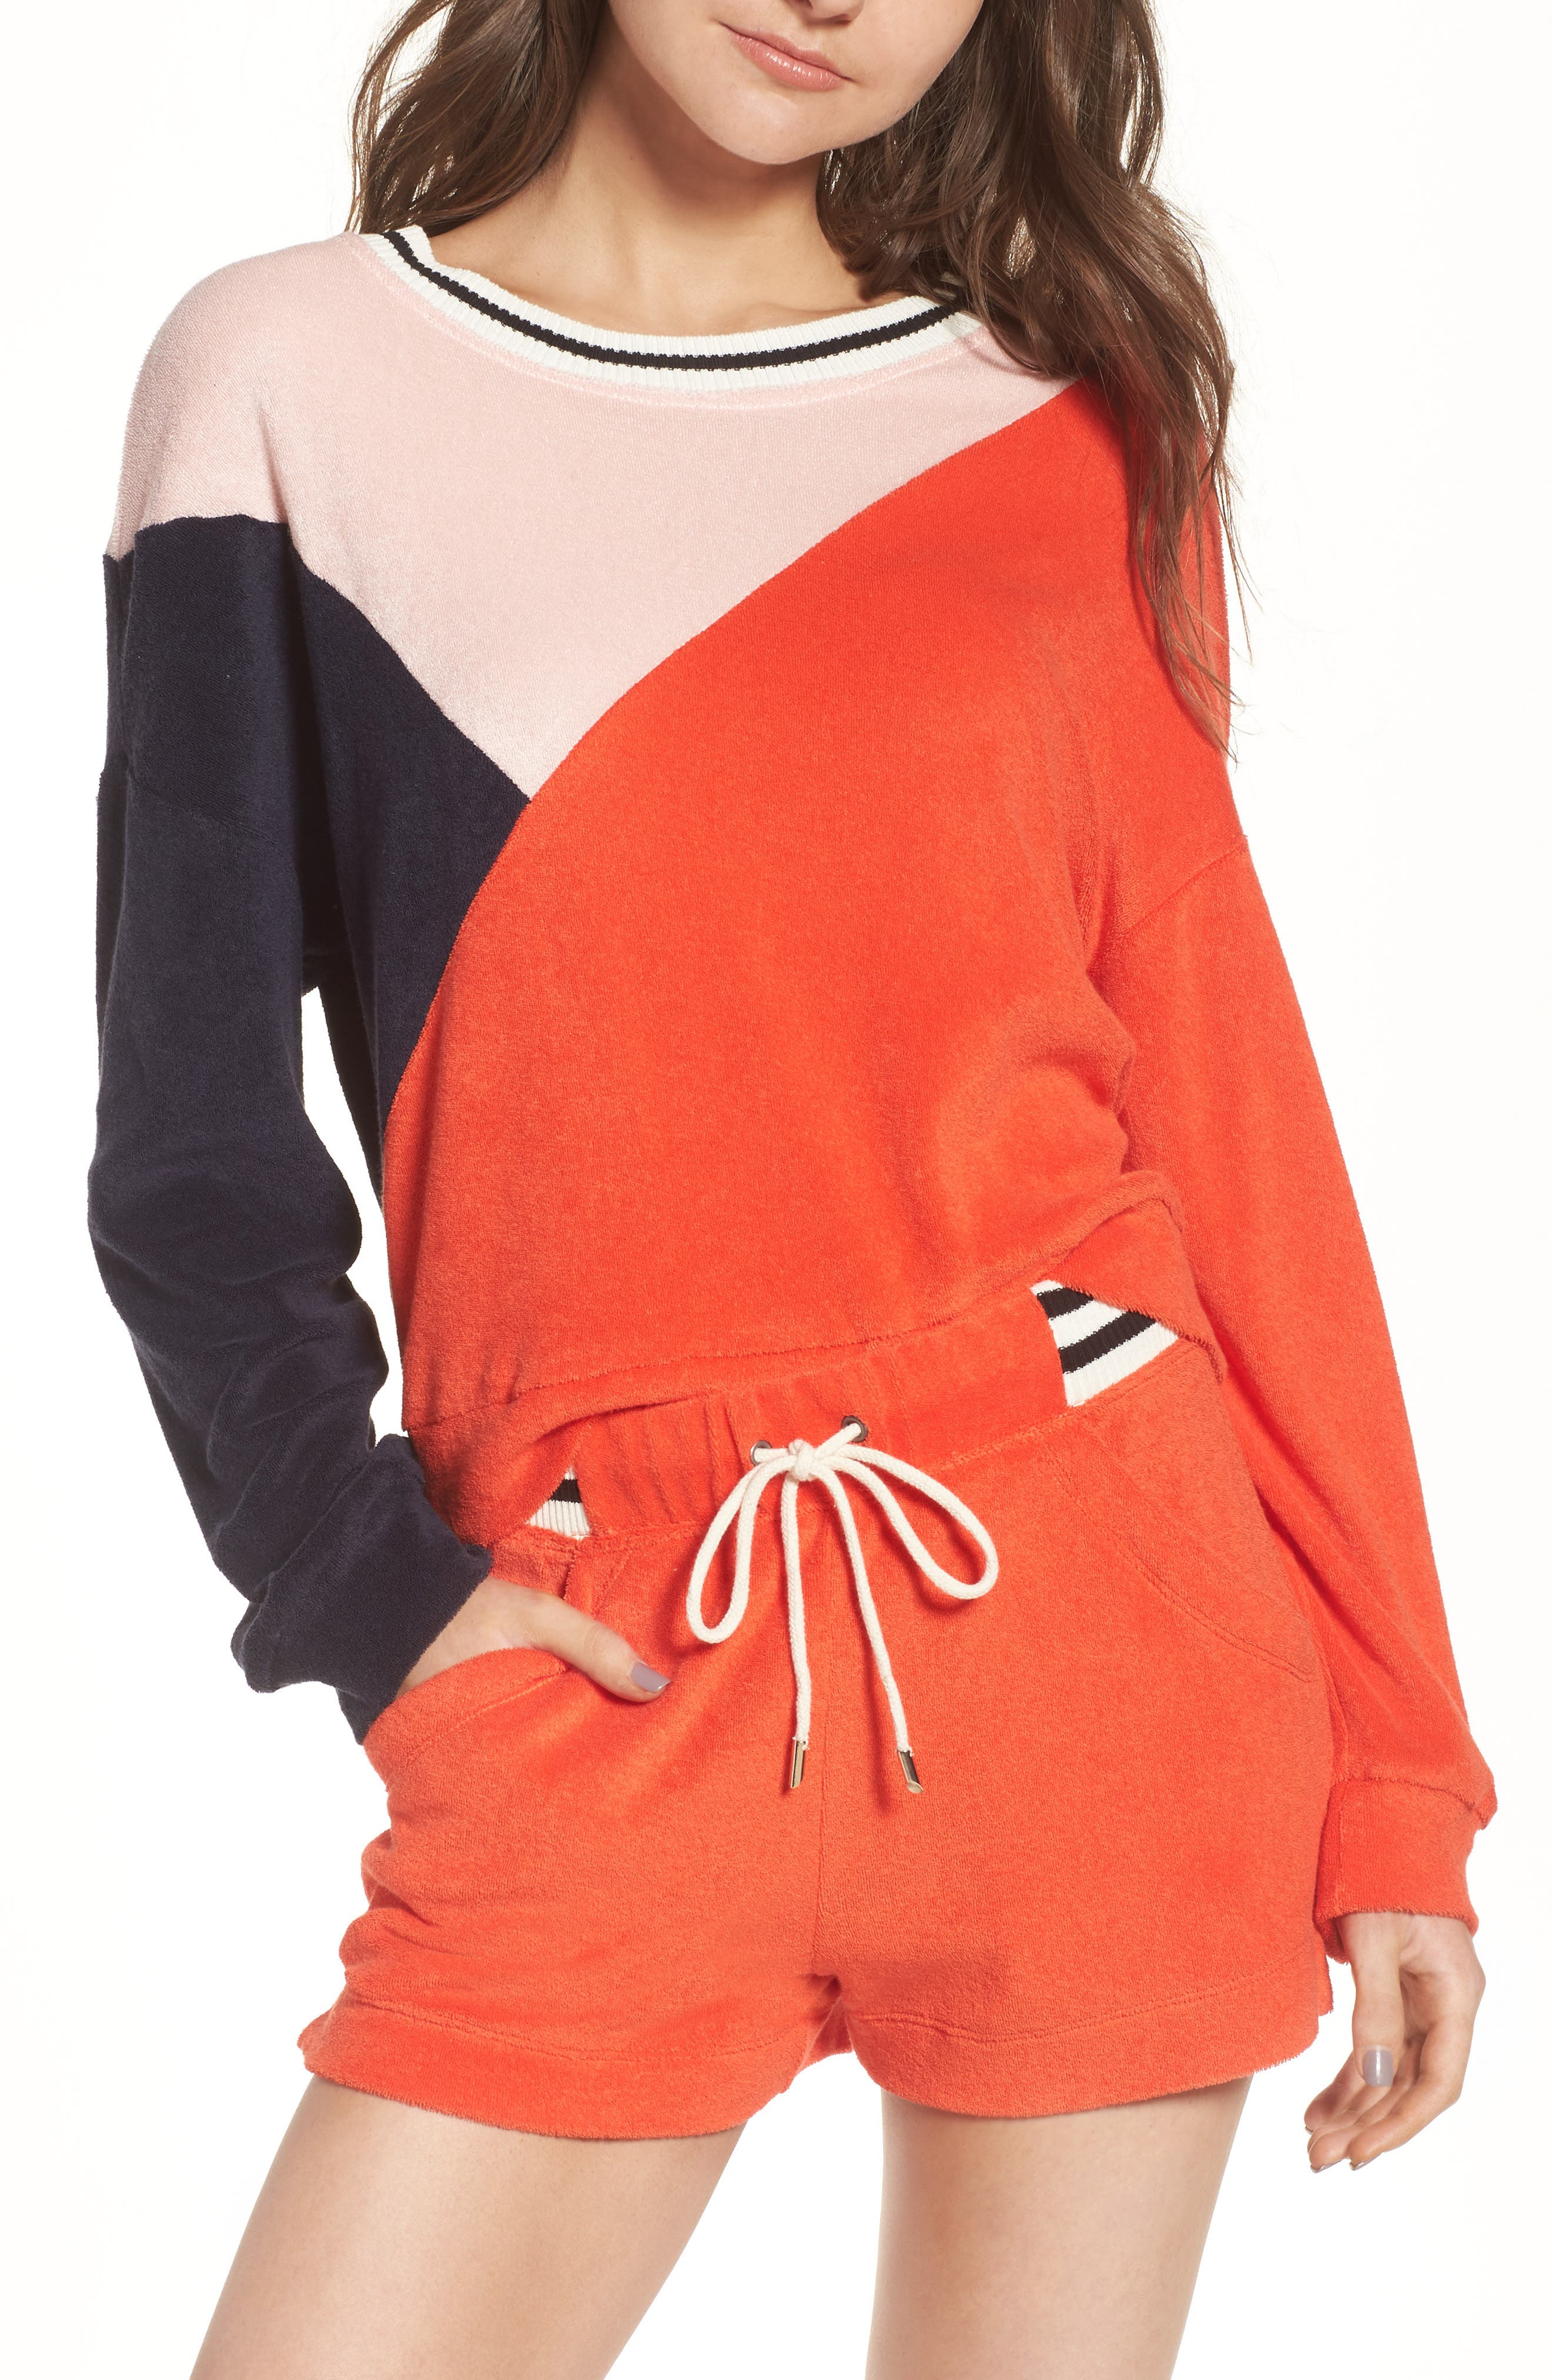 x Margherita Sportivo French Terry Sweatshirt,                             Main thumbnail 1, color,                             Red